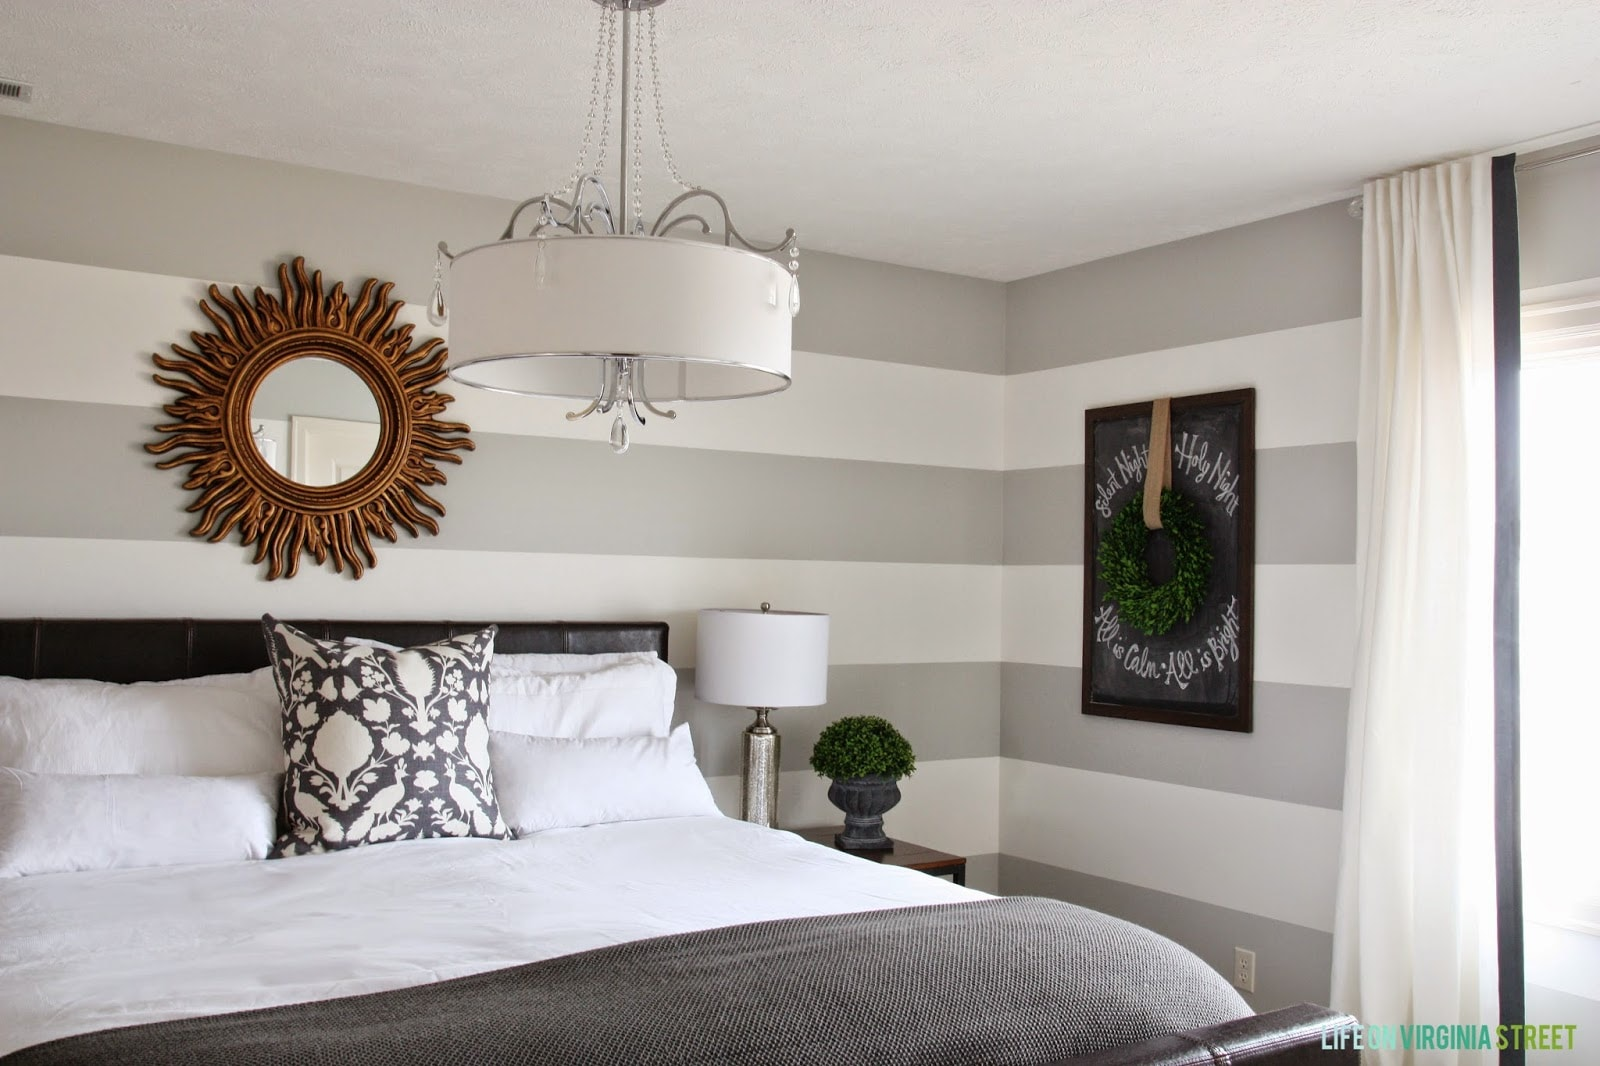 King Guest Bedroom Reveal Life On Virginia Street